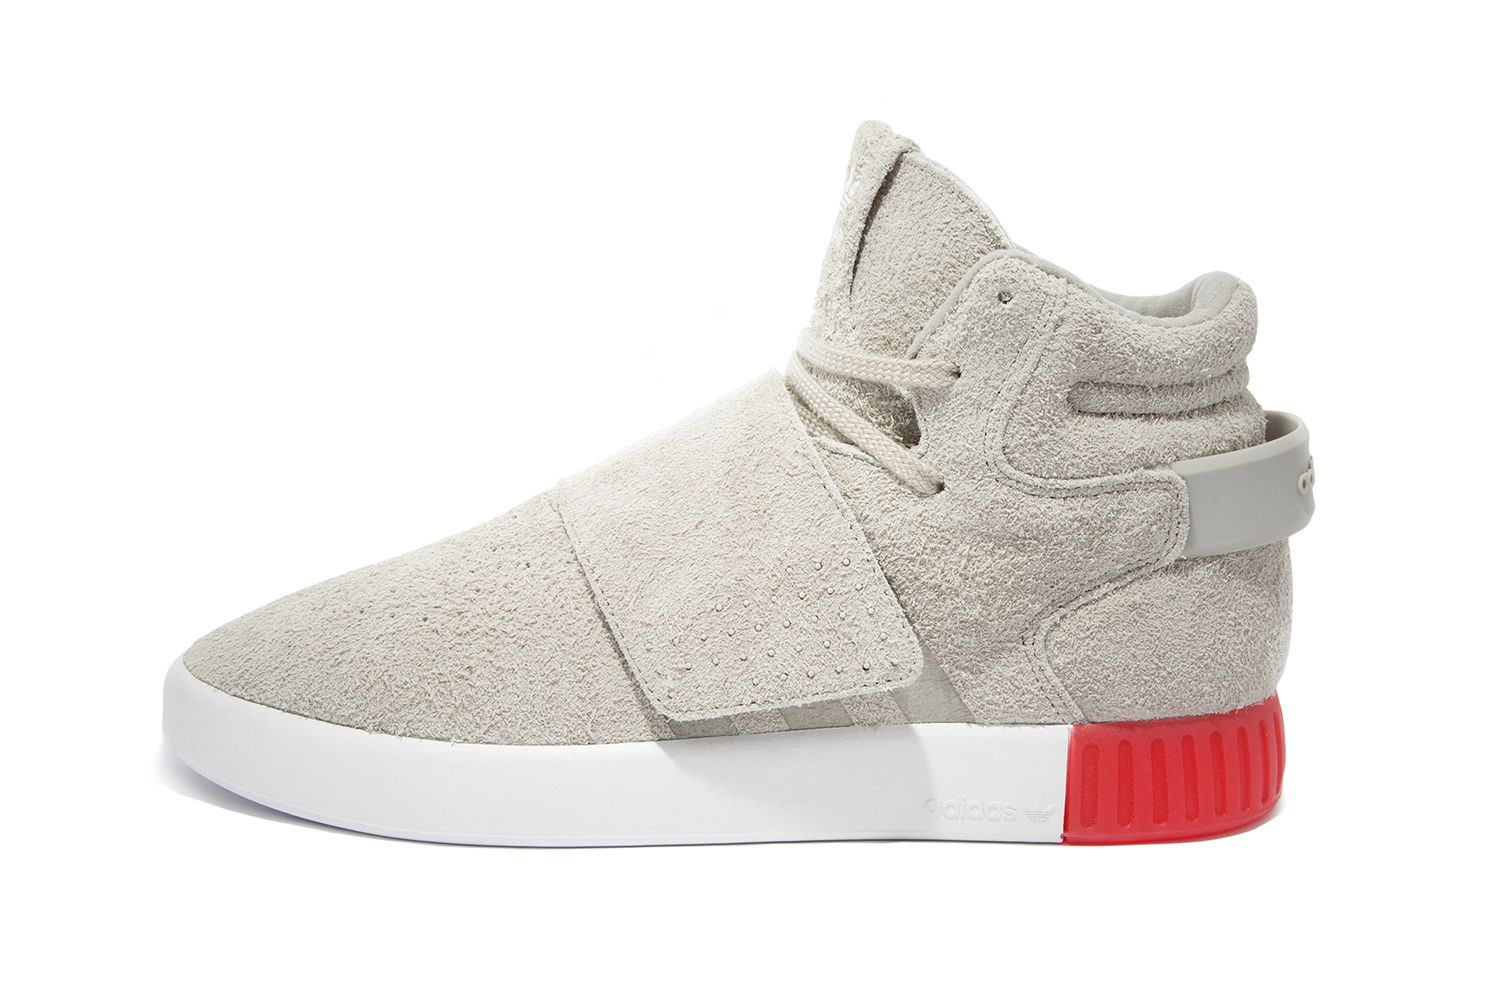 The Gets adidas Tubular Invader Gets The Strapped Up Adidas, Yeezy and Beige b704cc